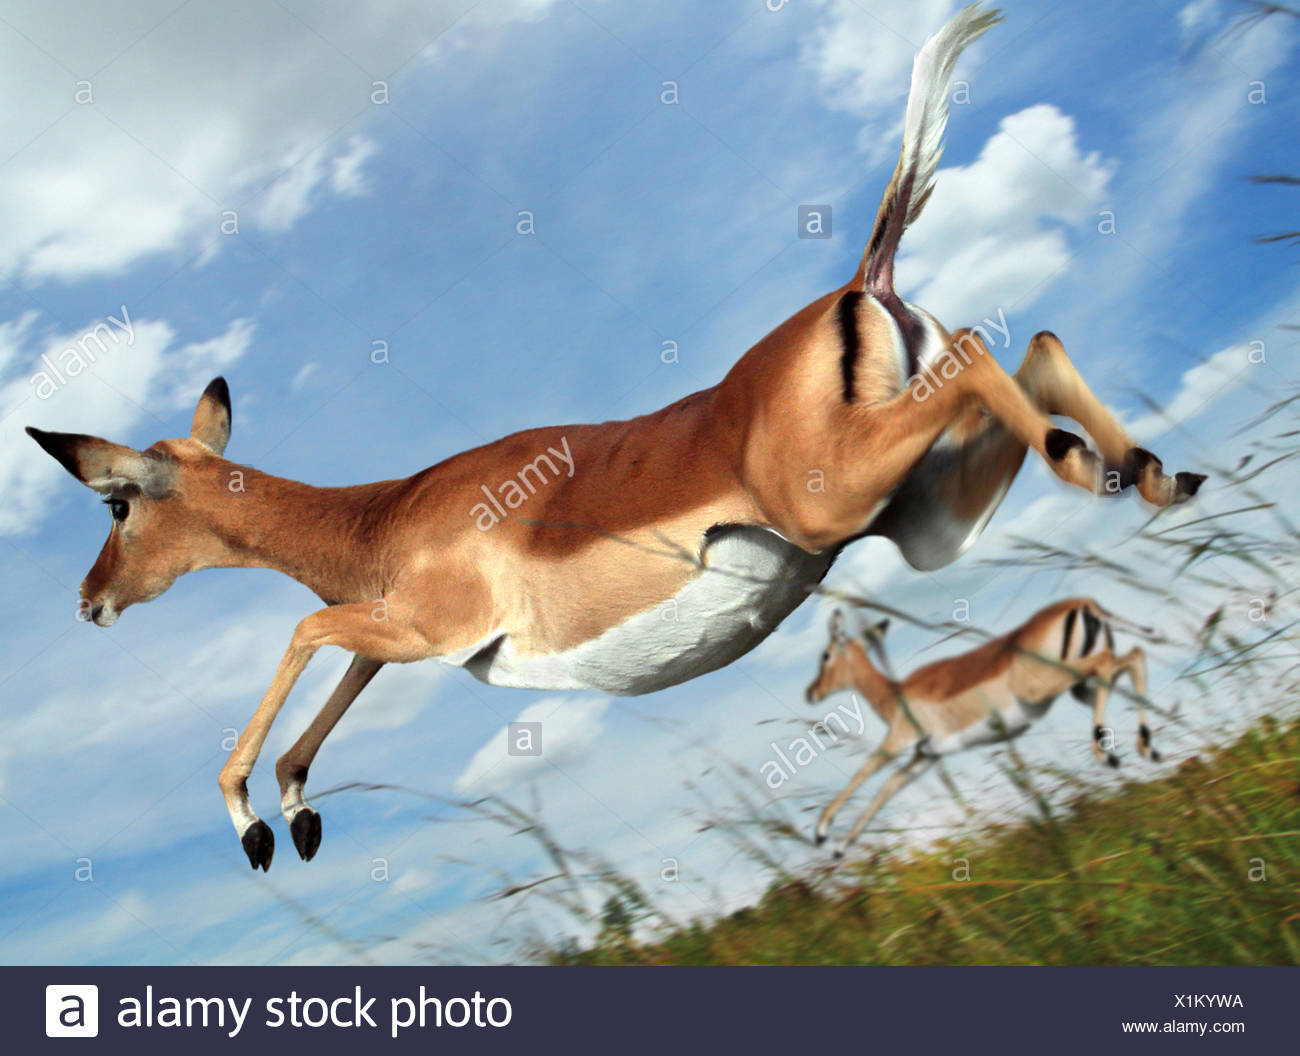 impala (Aepyceros melampus), jumping in flight, Kenya, Masai Mara National Park - Stock Image